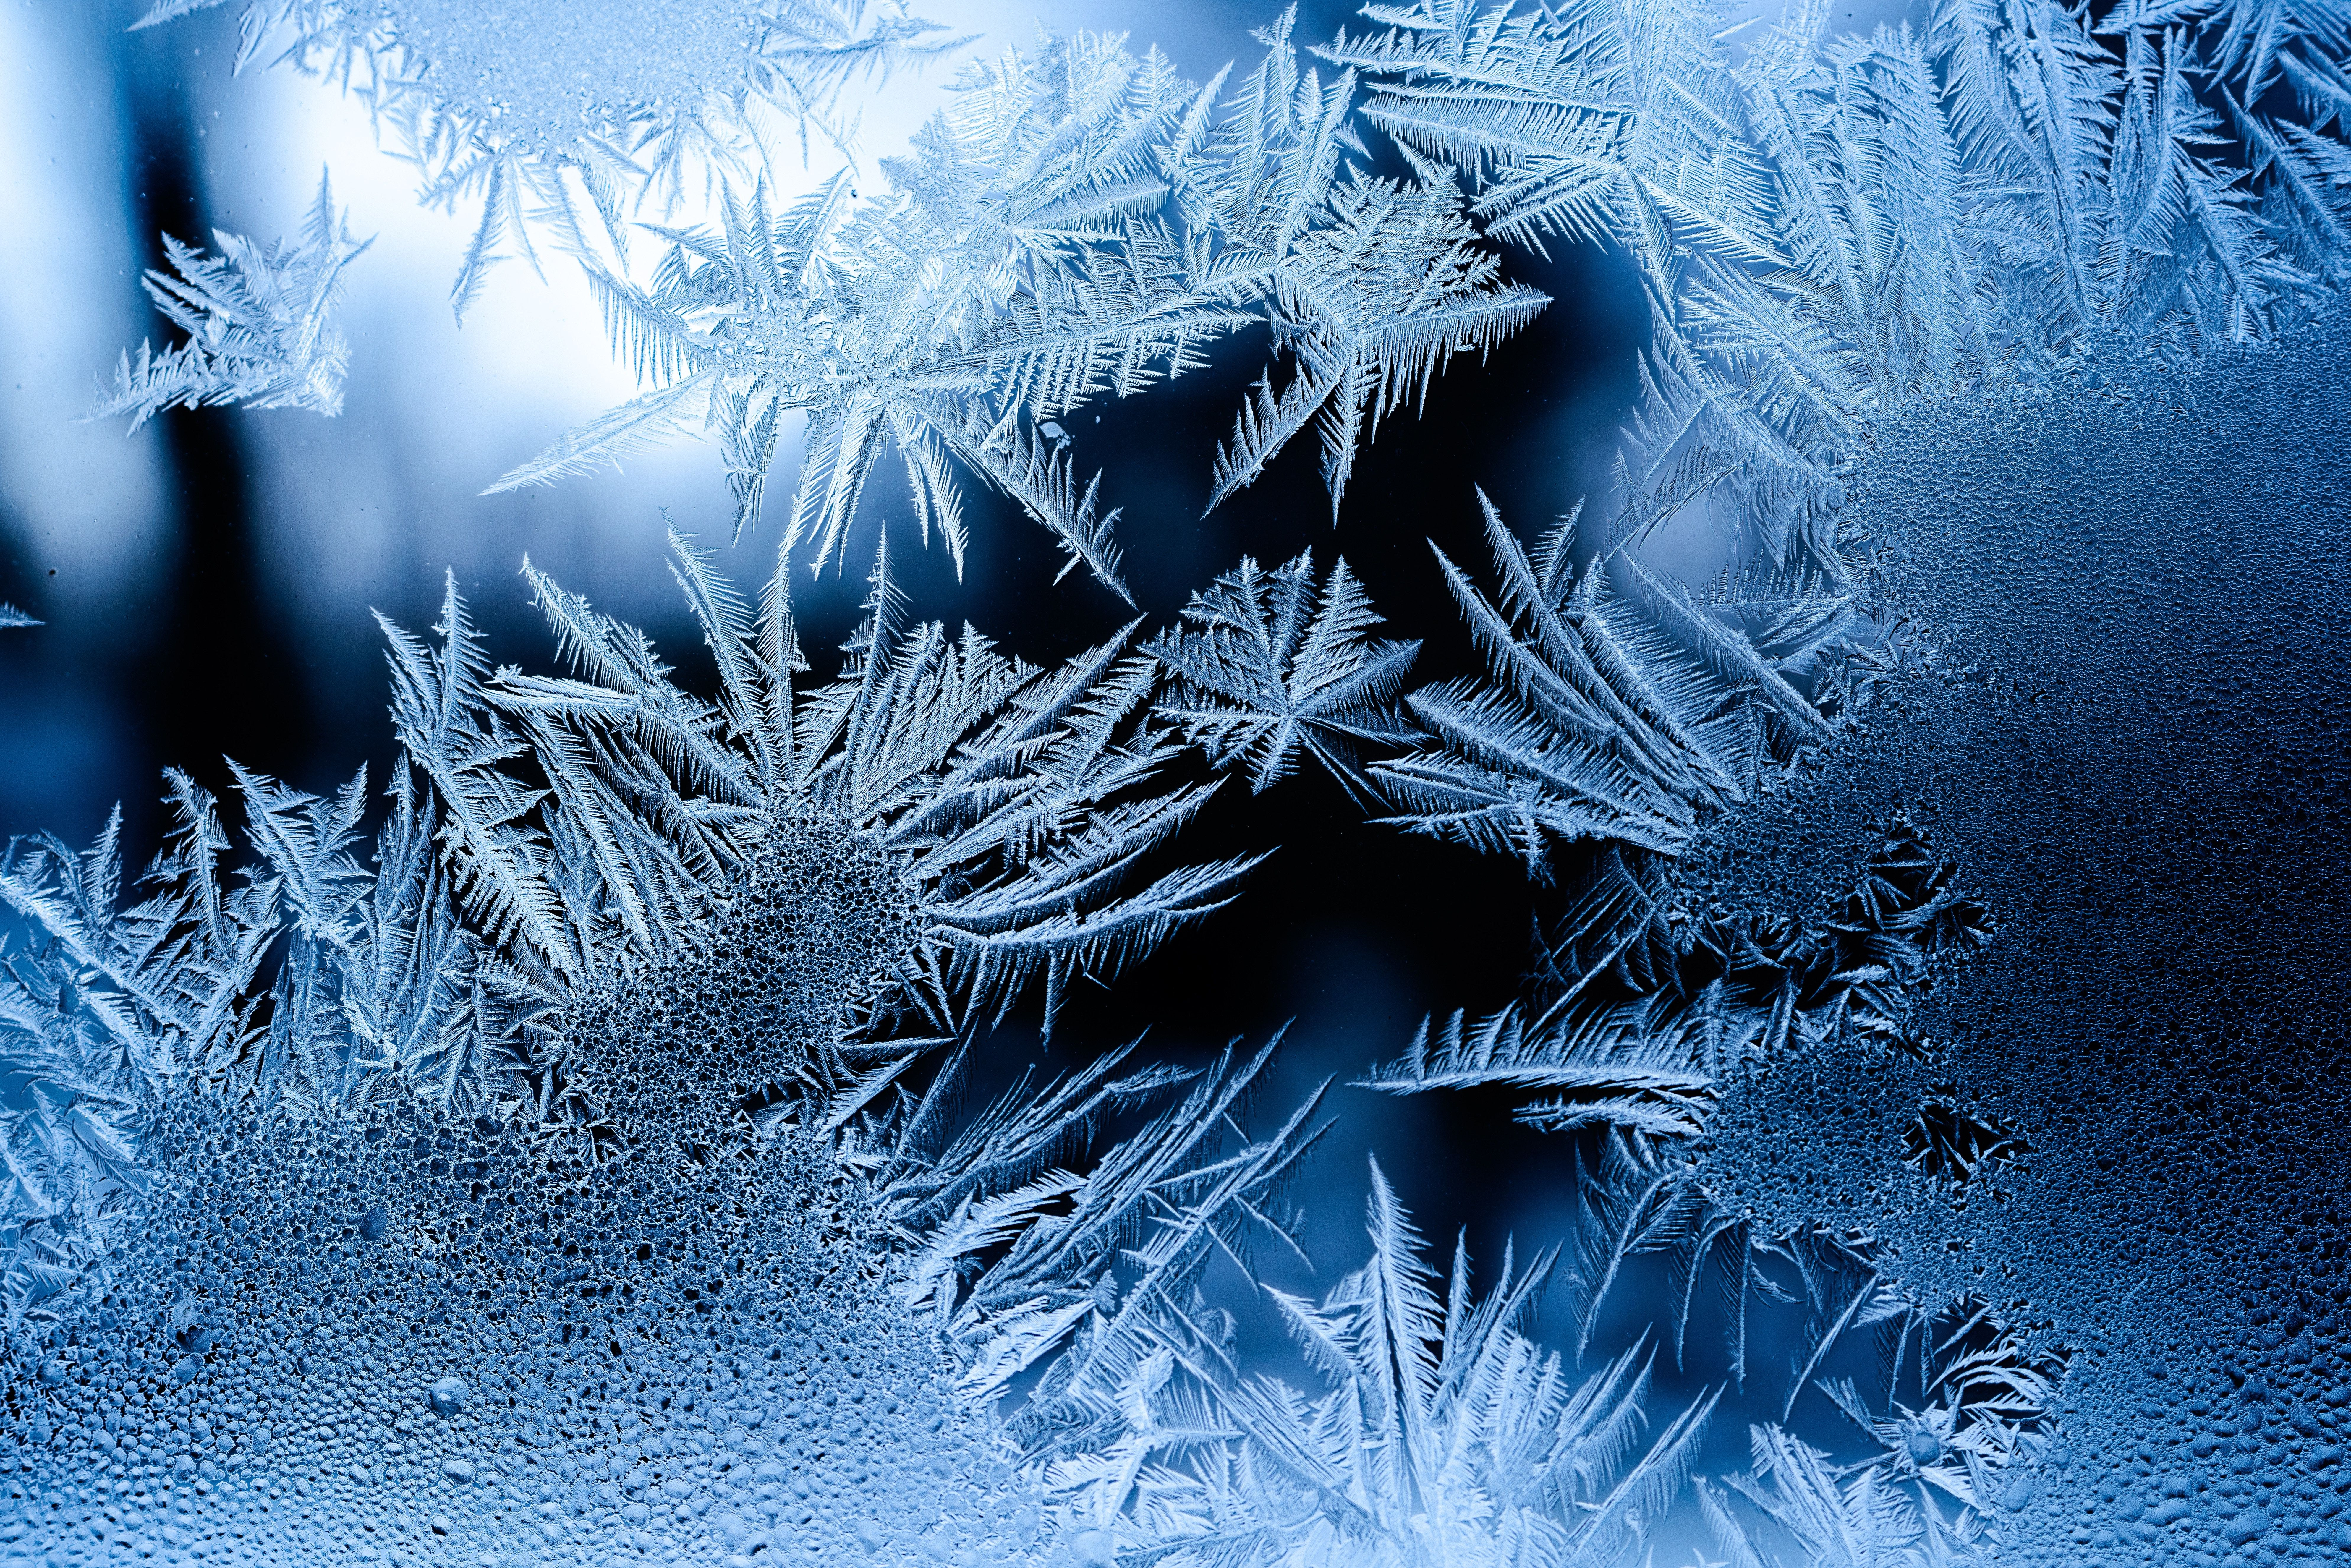 76249 download wallpaper Texture, Glass, Pattern, Textures, Frost, Hoarfrost screensavers and pictures for free